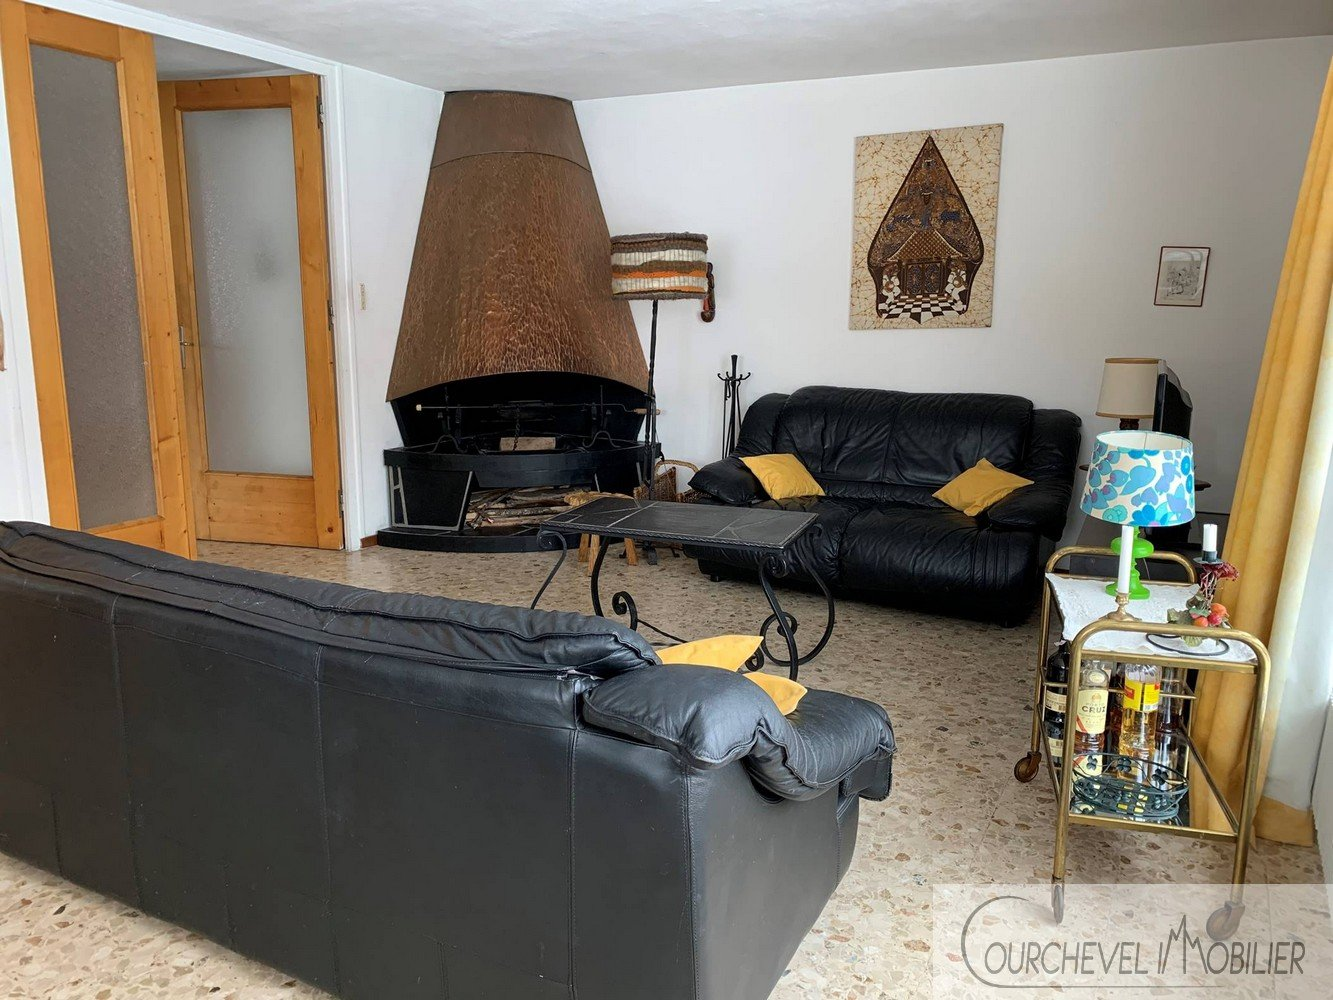 GRAND APPARTEMENT A RAFRAICHIR - COURCHEVEL LE PRAZ